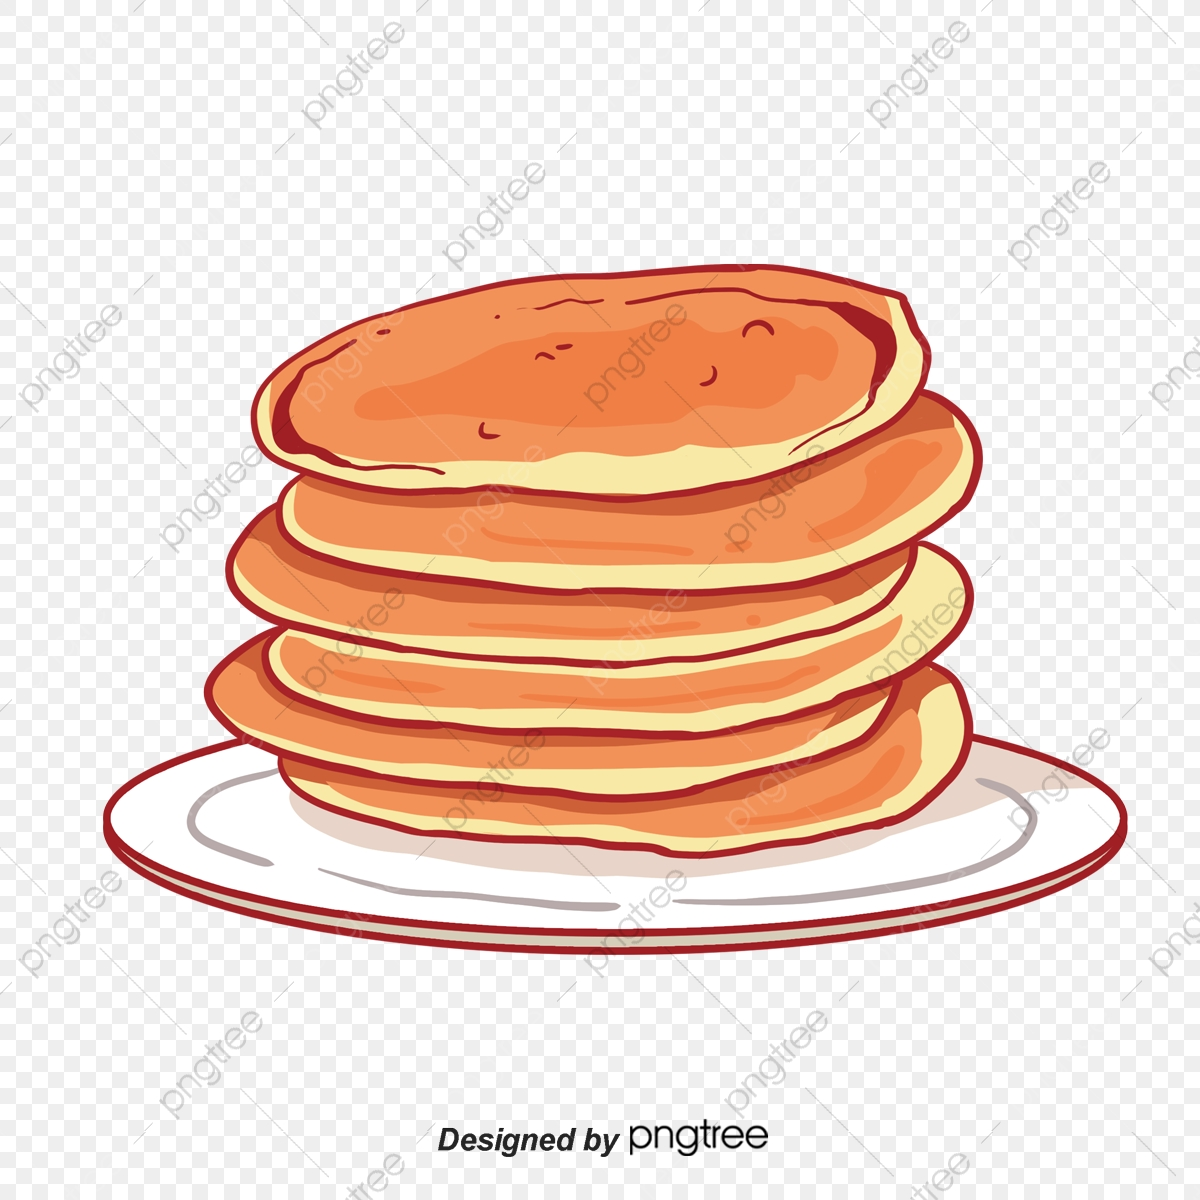 hight resolution of commercial use resource upgrade to premium plan and get license authorization upgradenow pancakes